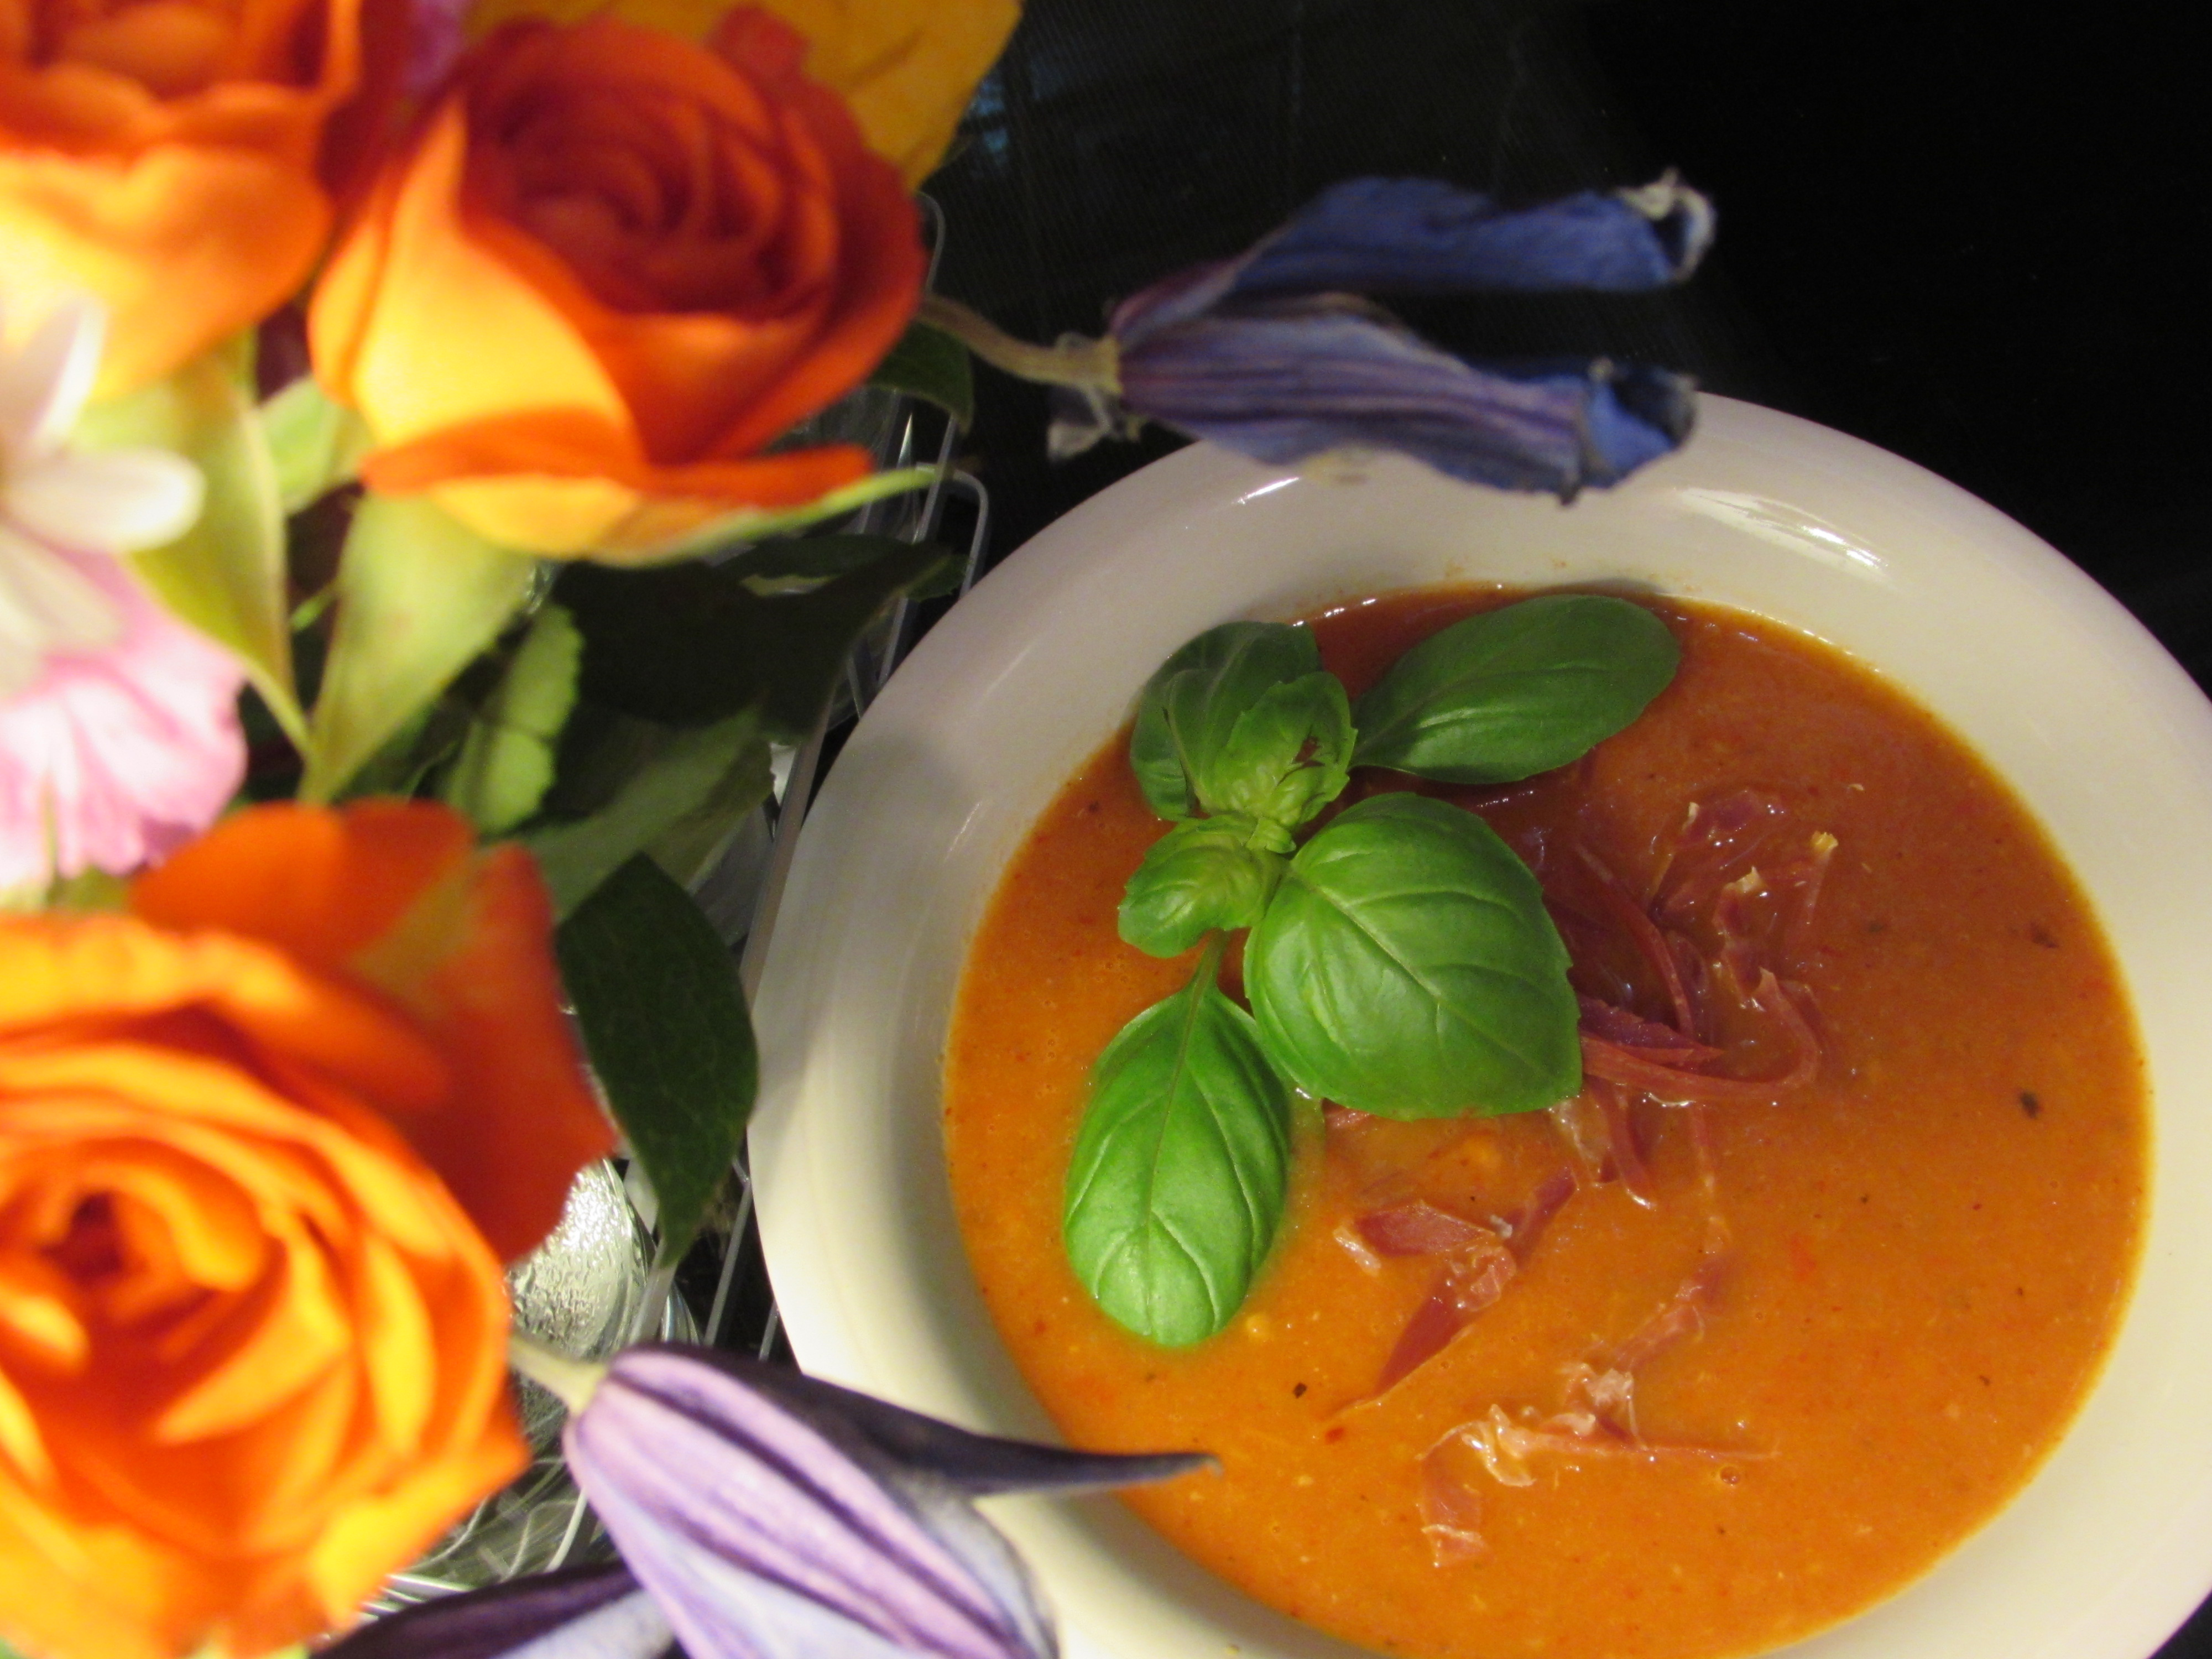 The Weekly Soup – Roasted Pepper and Tomato Soup